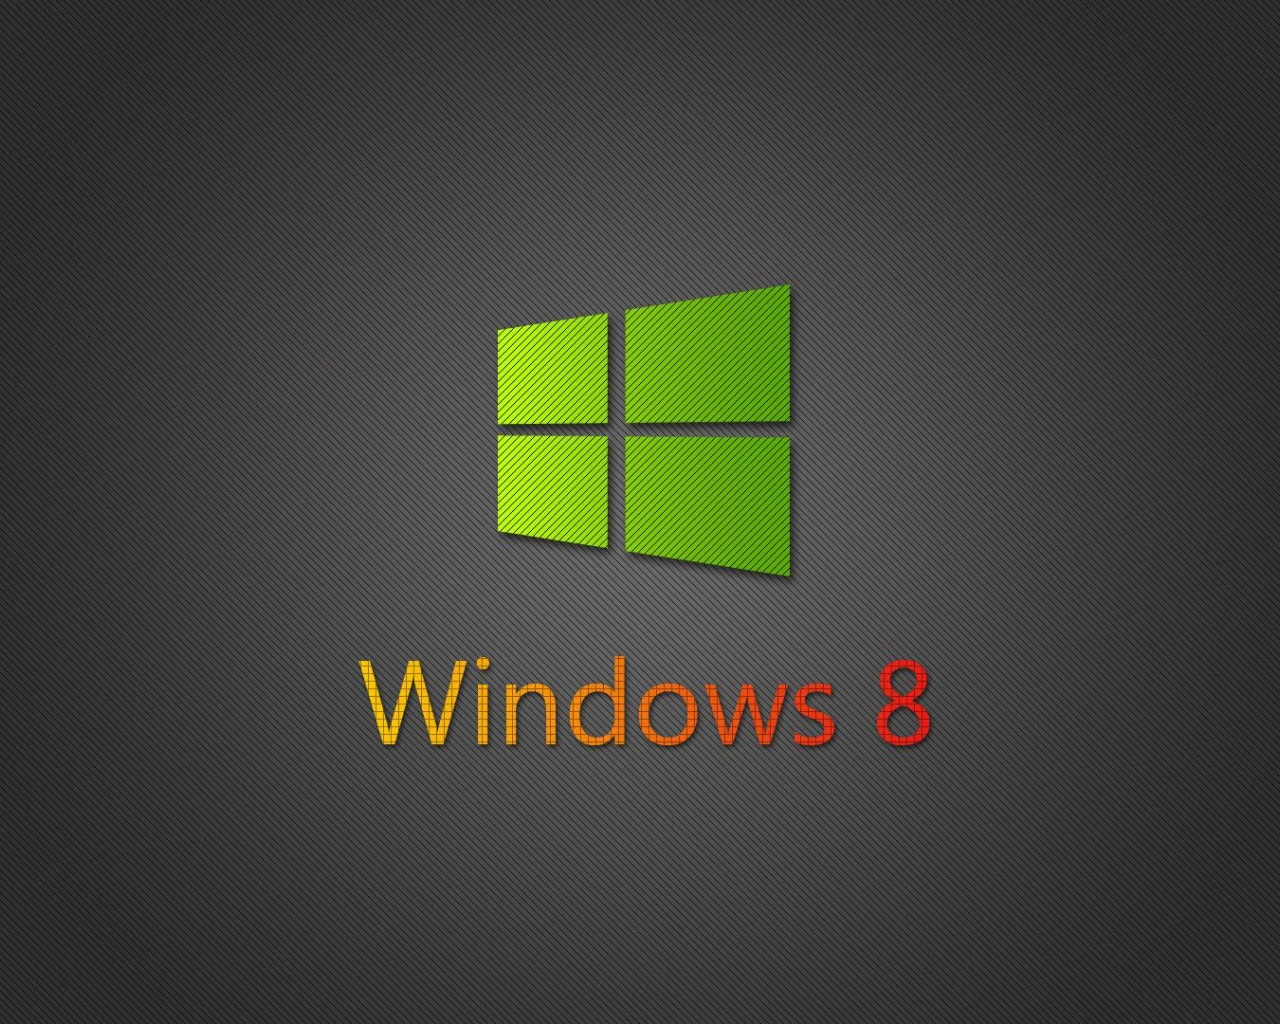 1280x1024 Windows 8